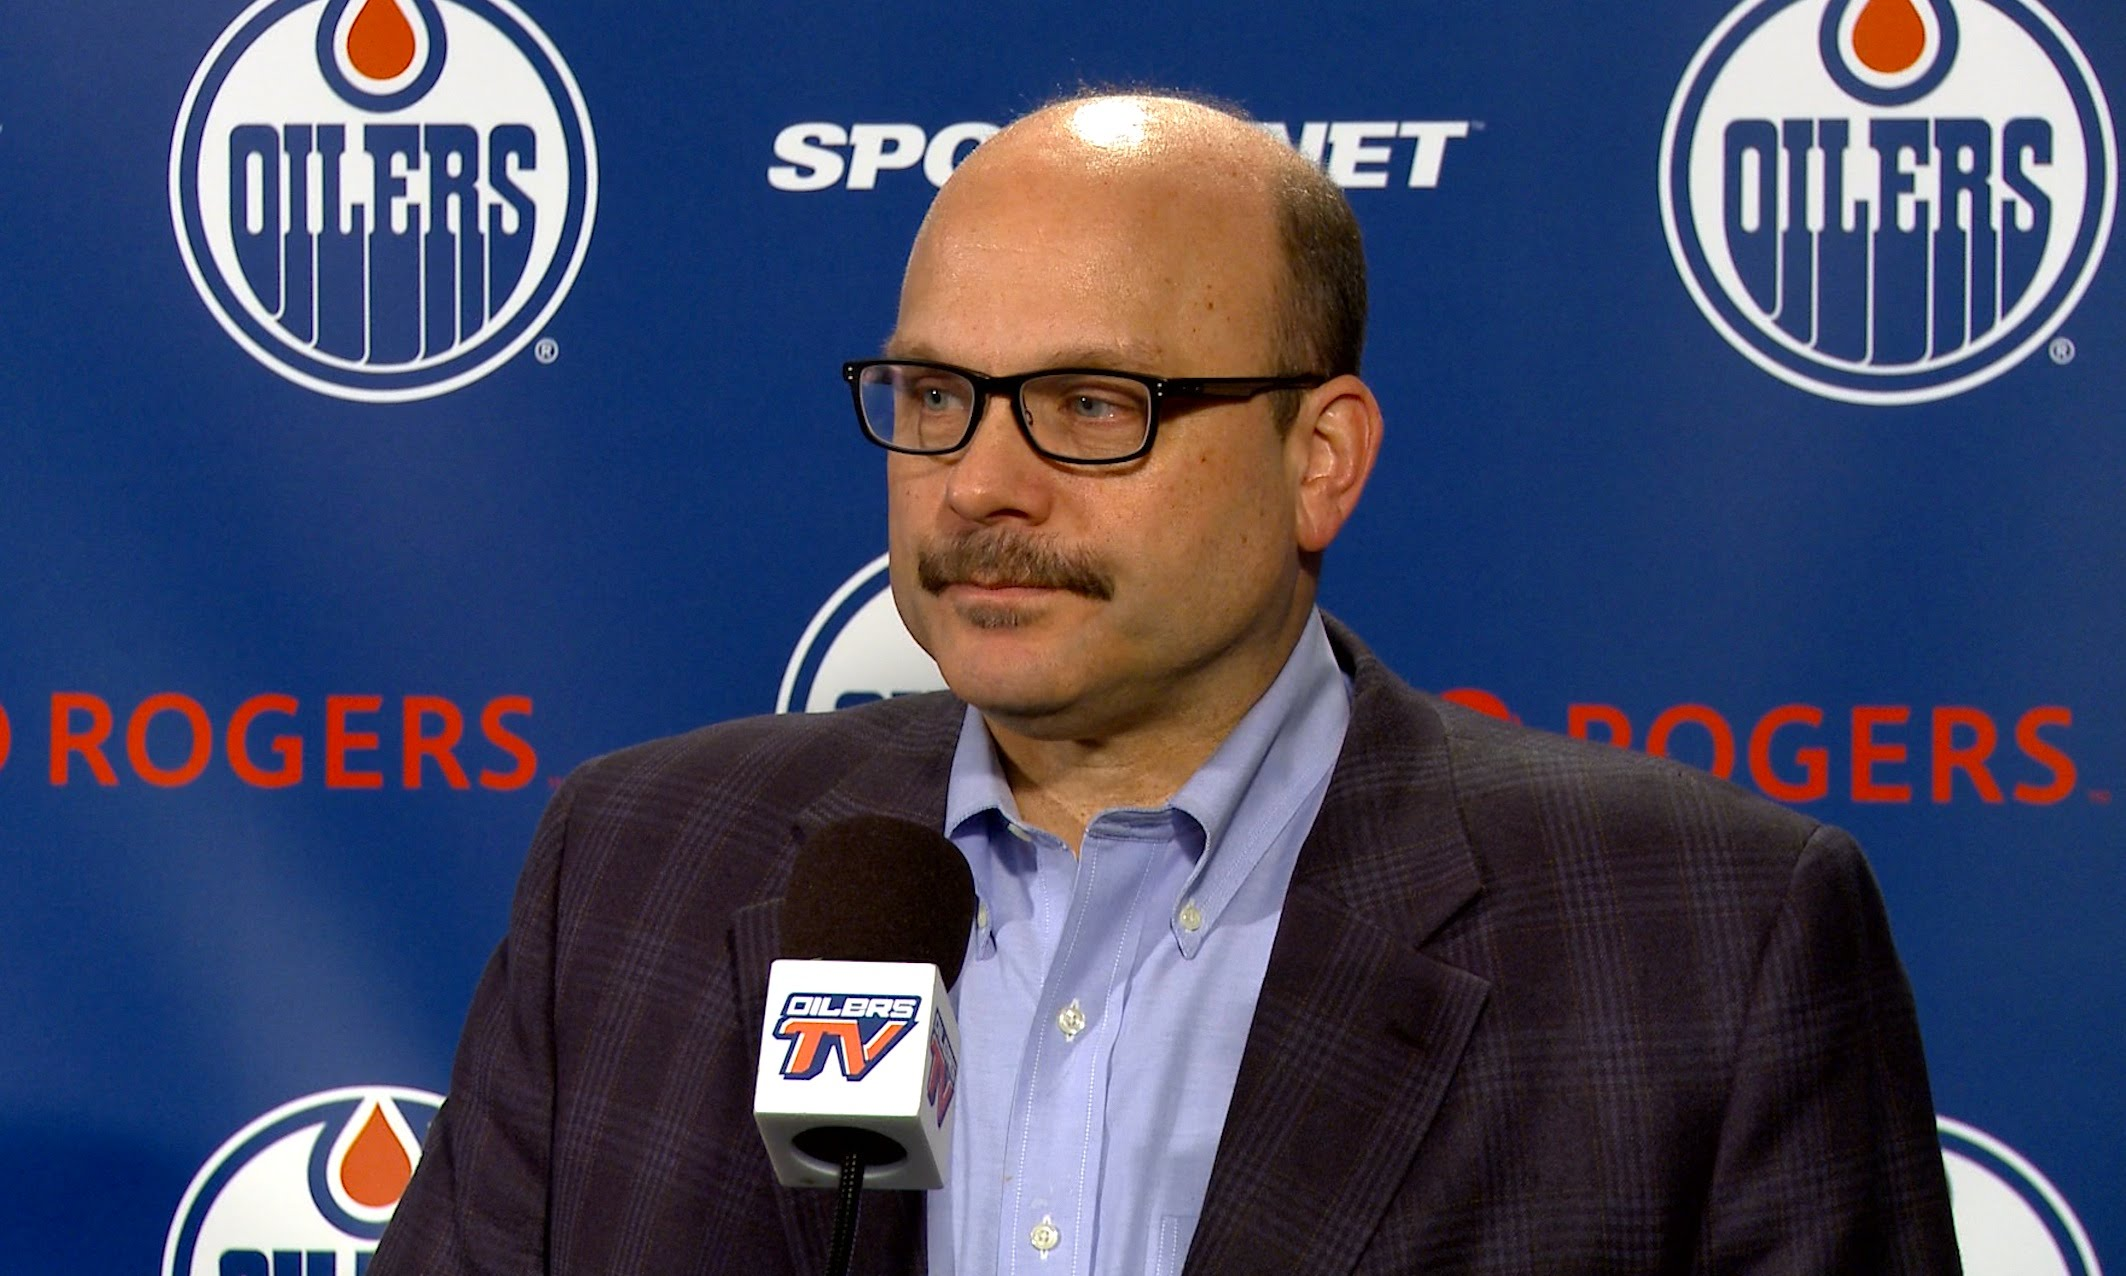 Image result for Chiarelli meme